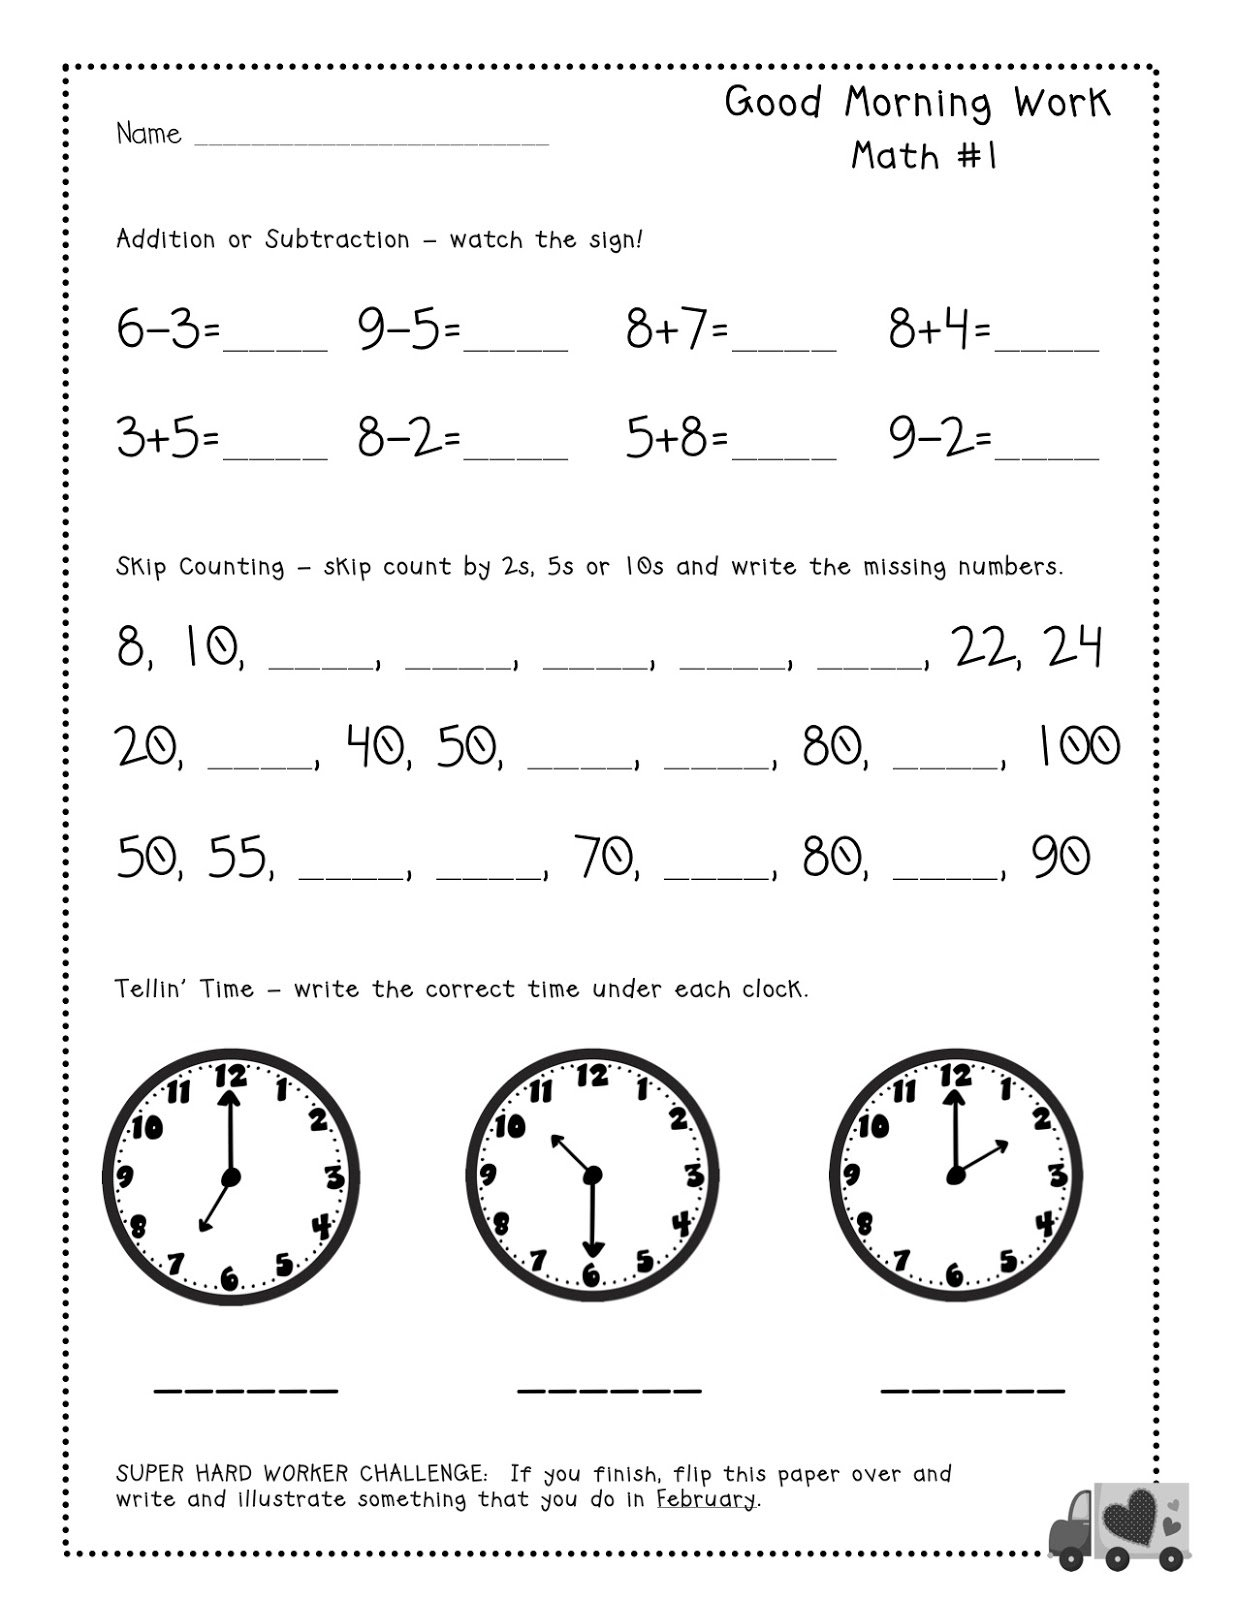 Free Tester Good Morning Work Pages For Firsties Common Core Math